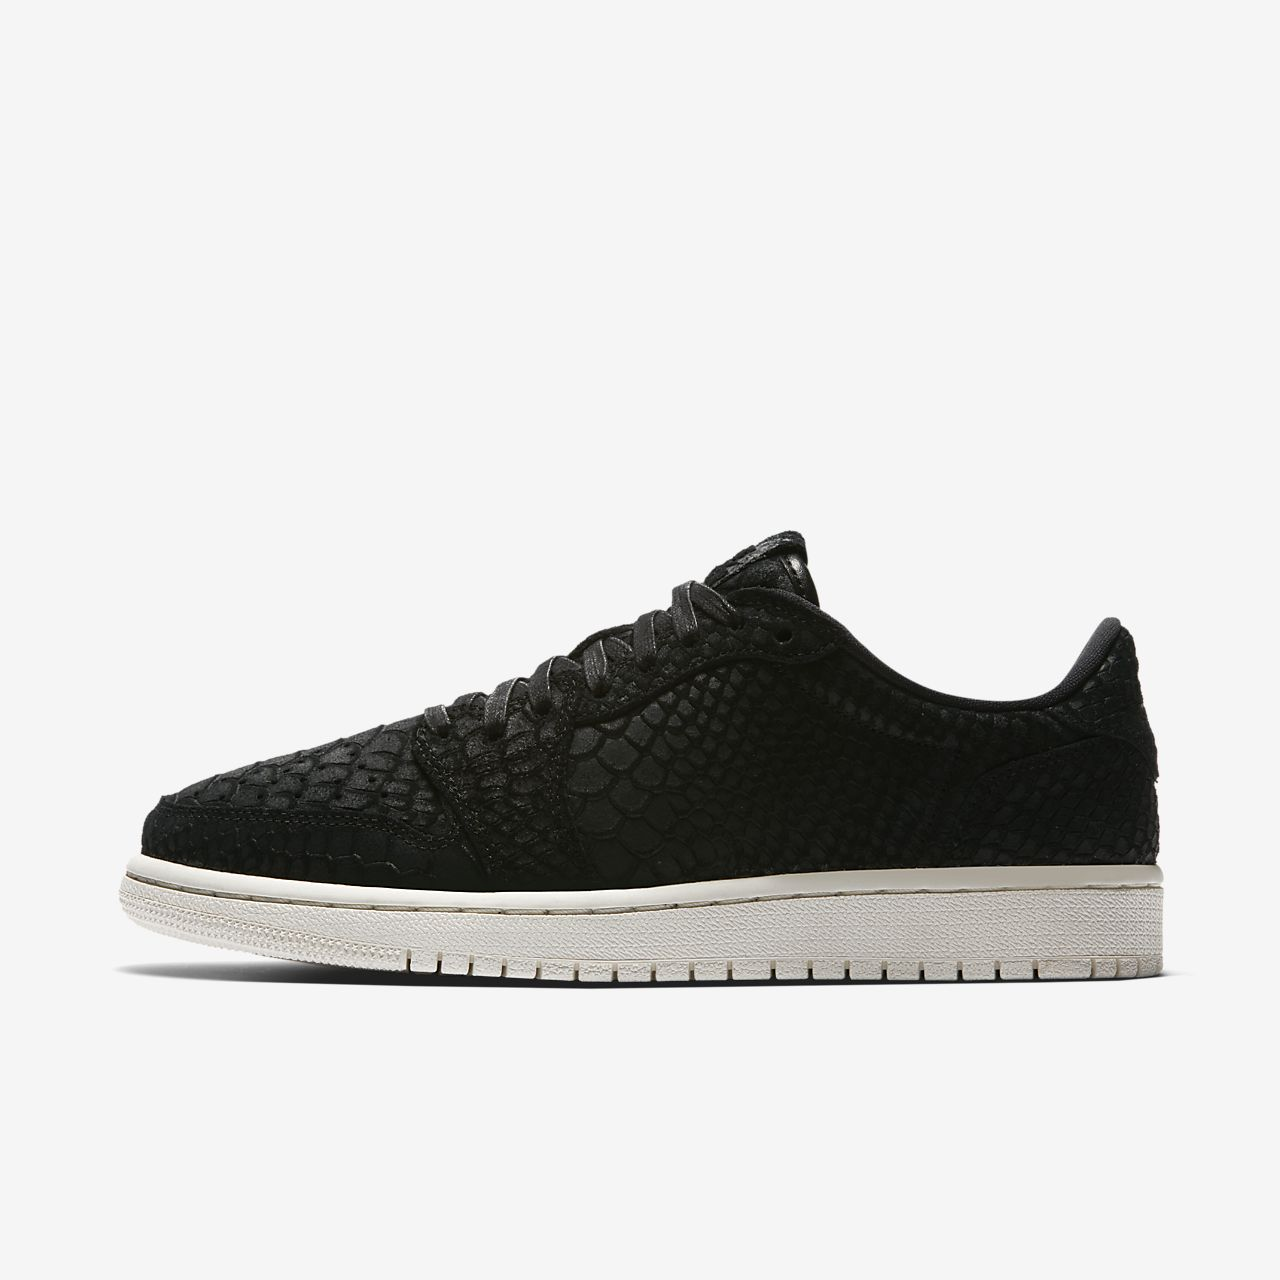 air jordan 1 retro low nz